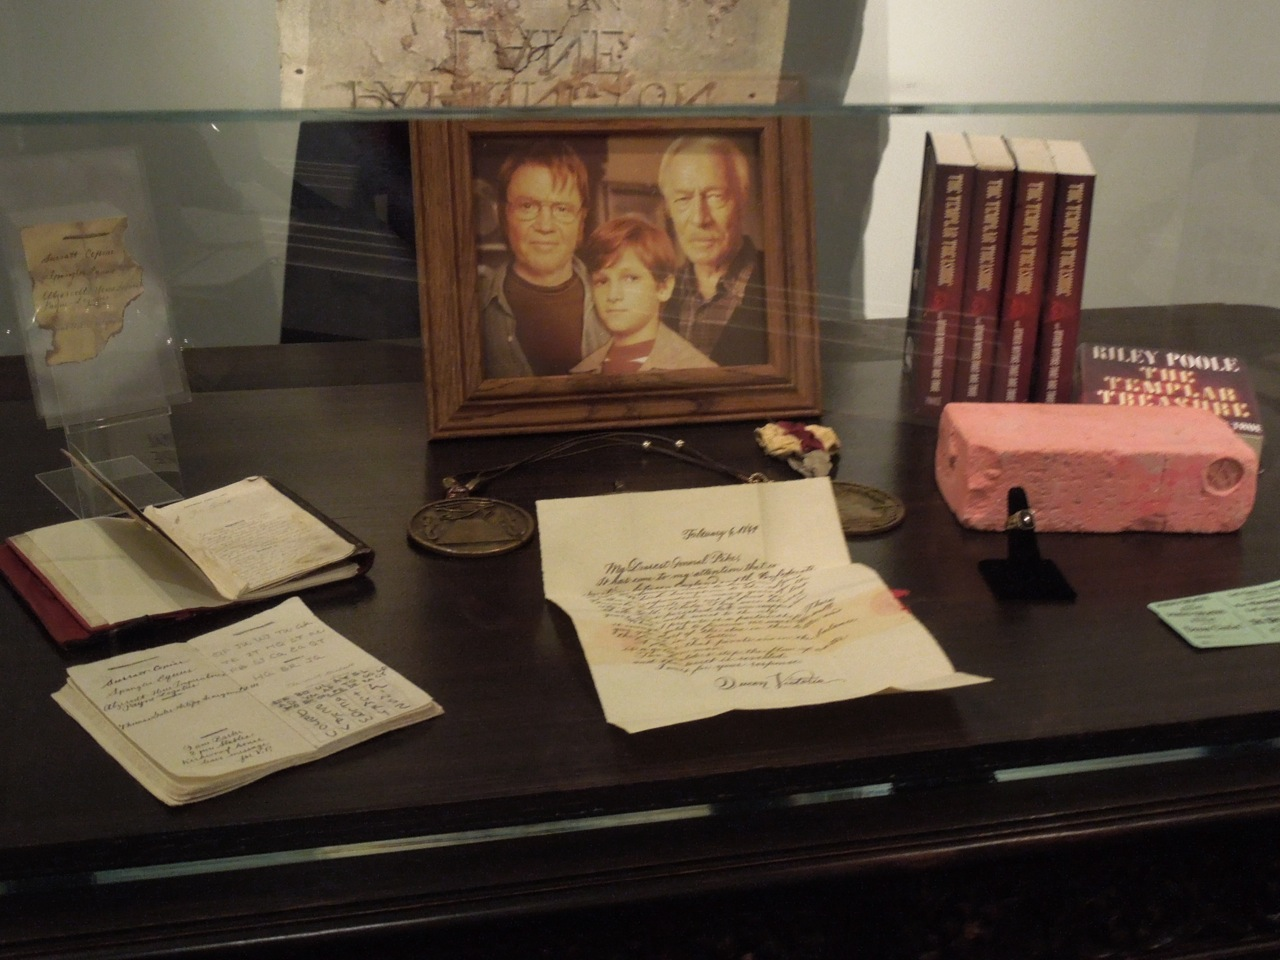 costume and props from national treasure on display